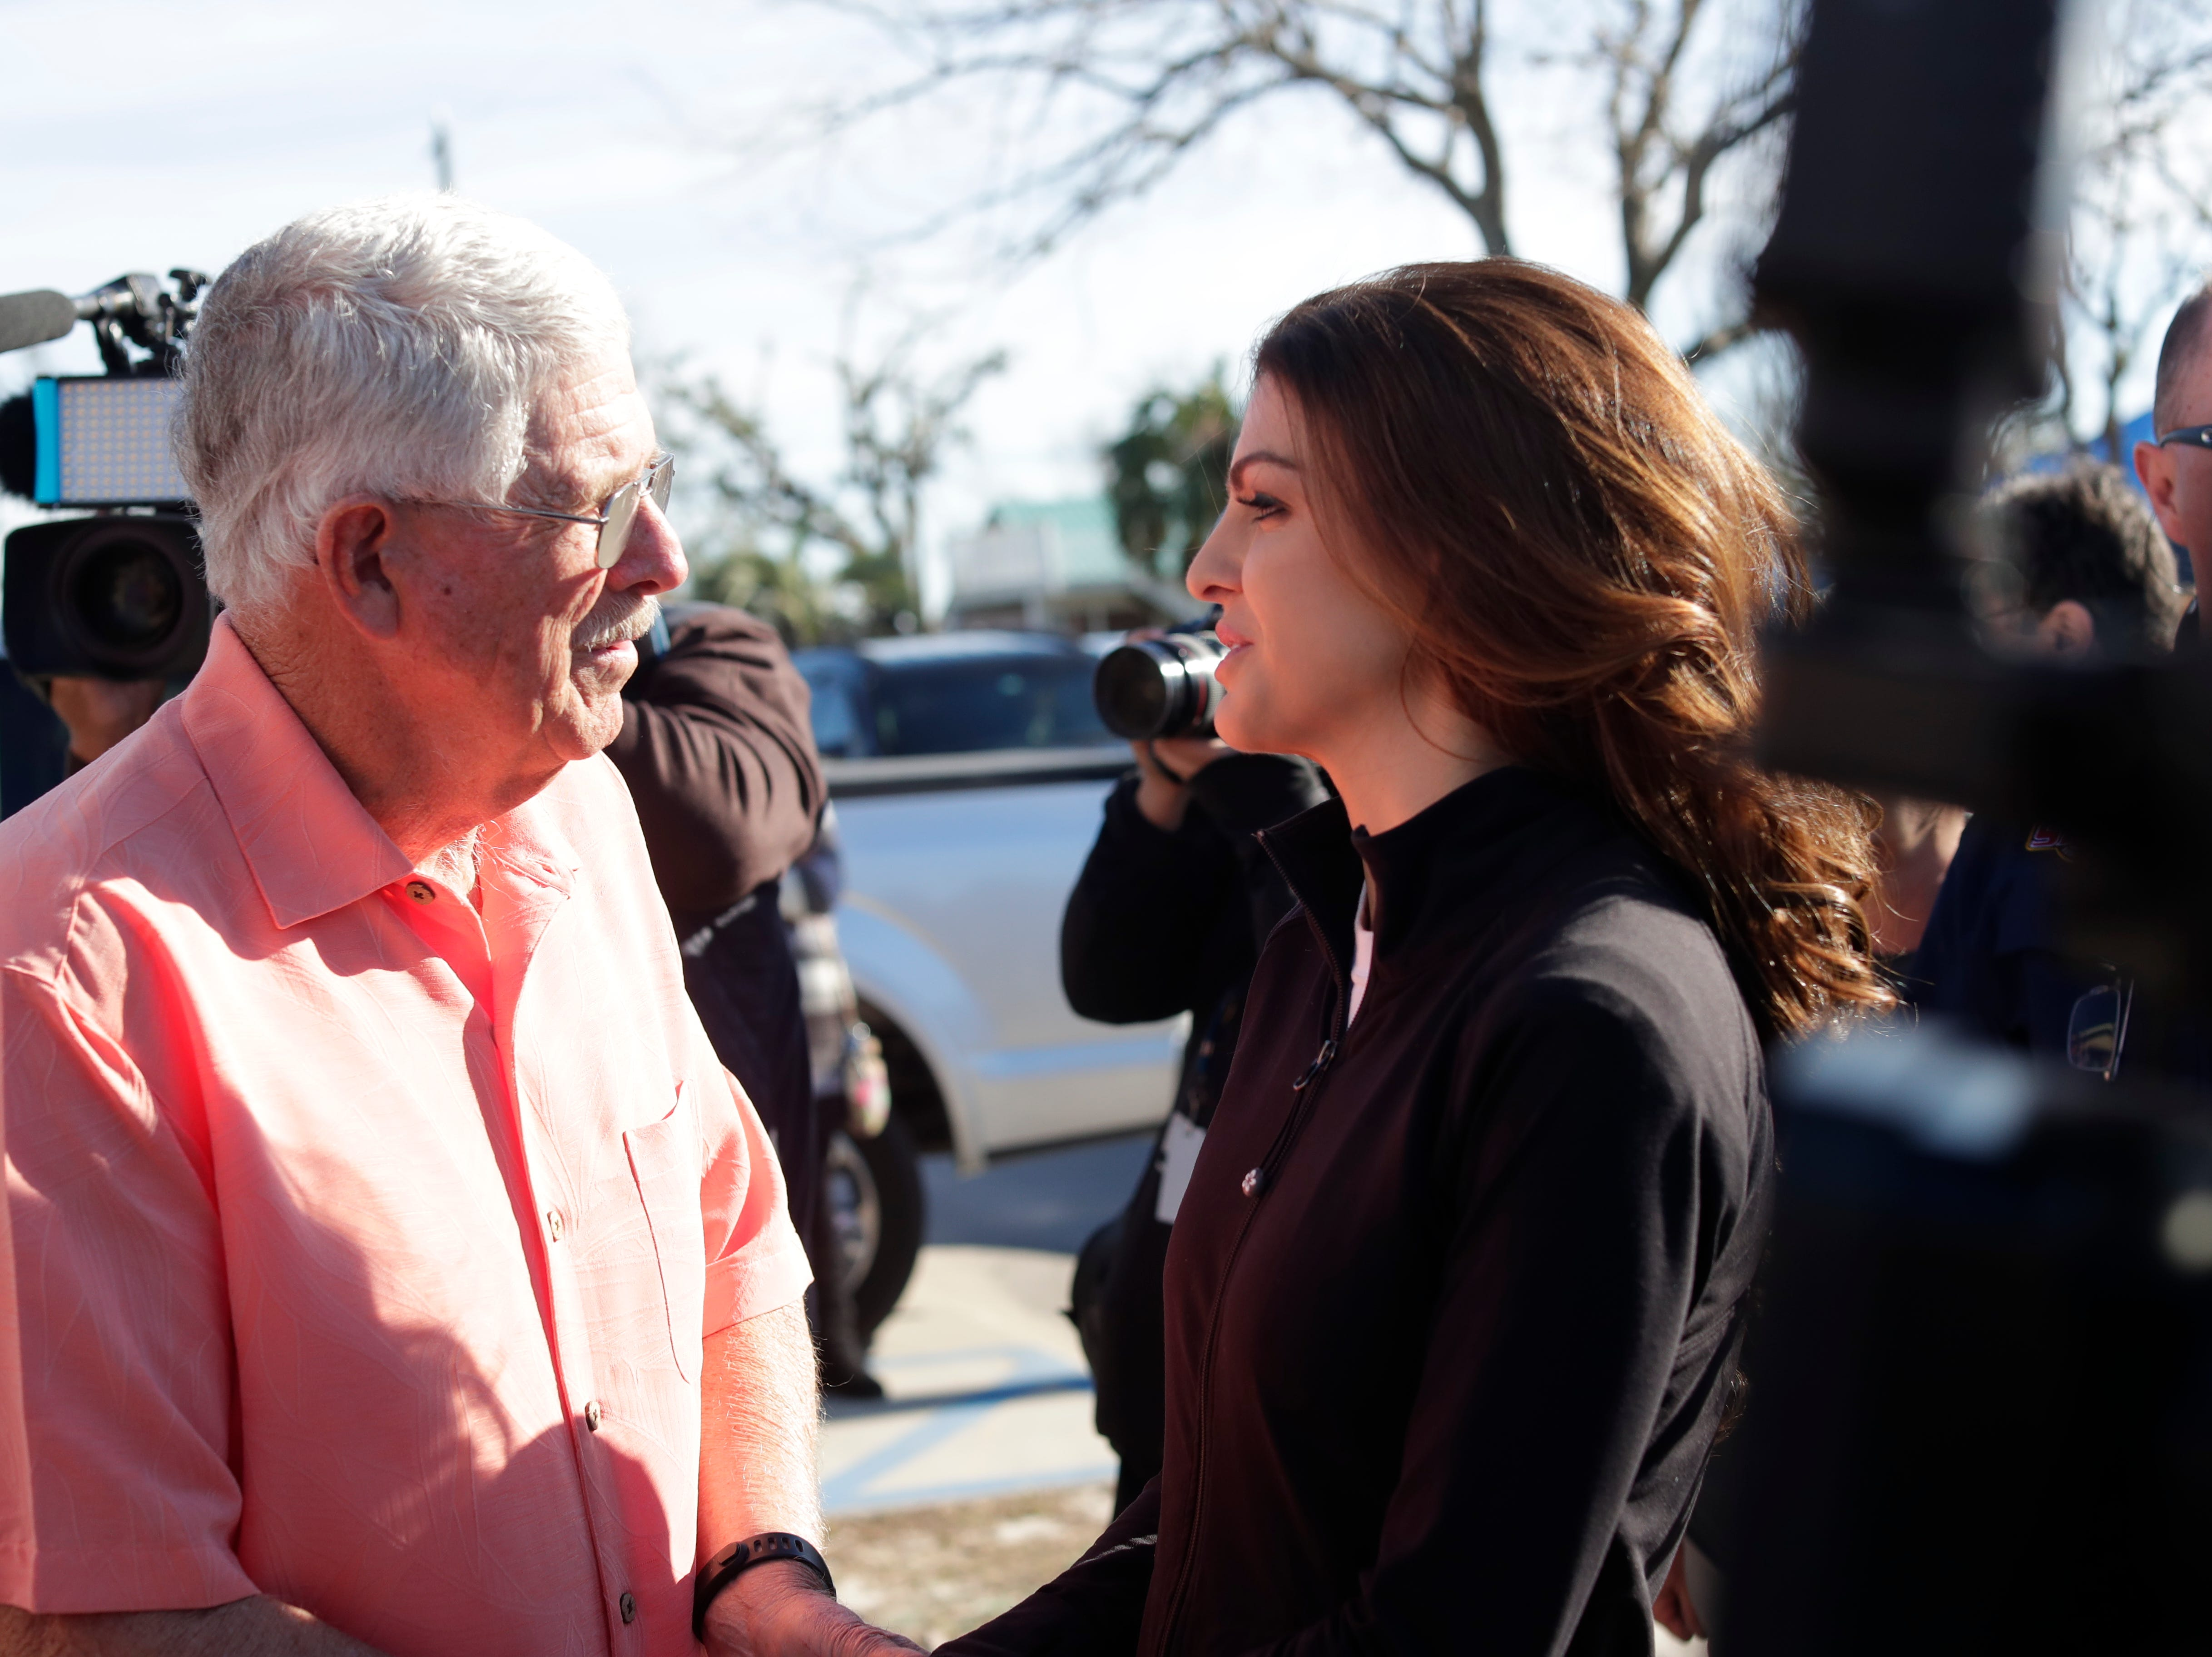 First lady Casey DeSantis, right, is greeted by the Mexico Beach Mayor Al Cathey, before touring the city Wednesday, Jan. 9, 2019. Hurricane Michael left the panhandle in a total disarray on Oct. 10, 2018.